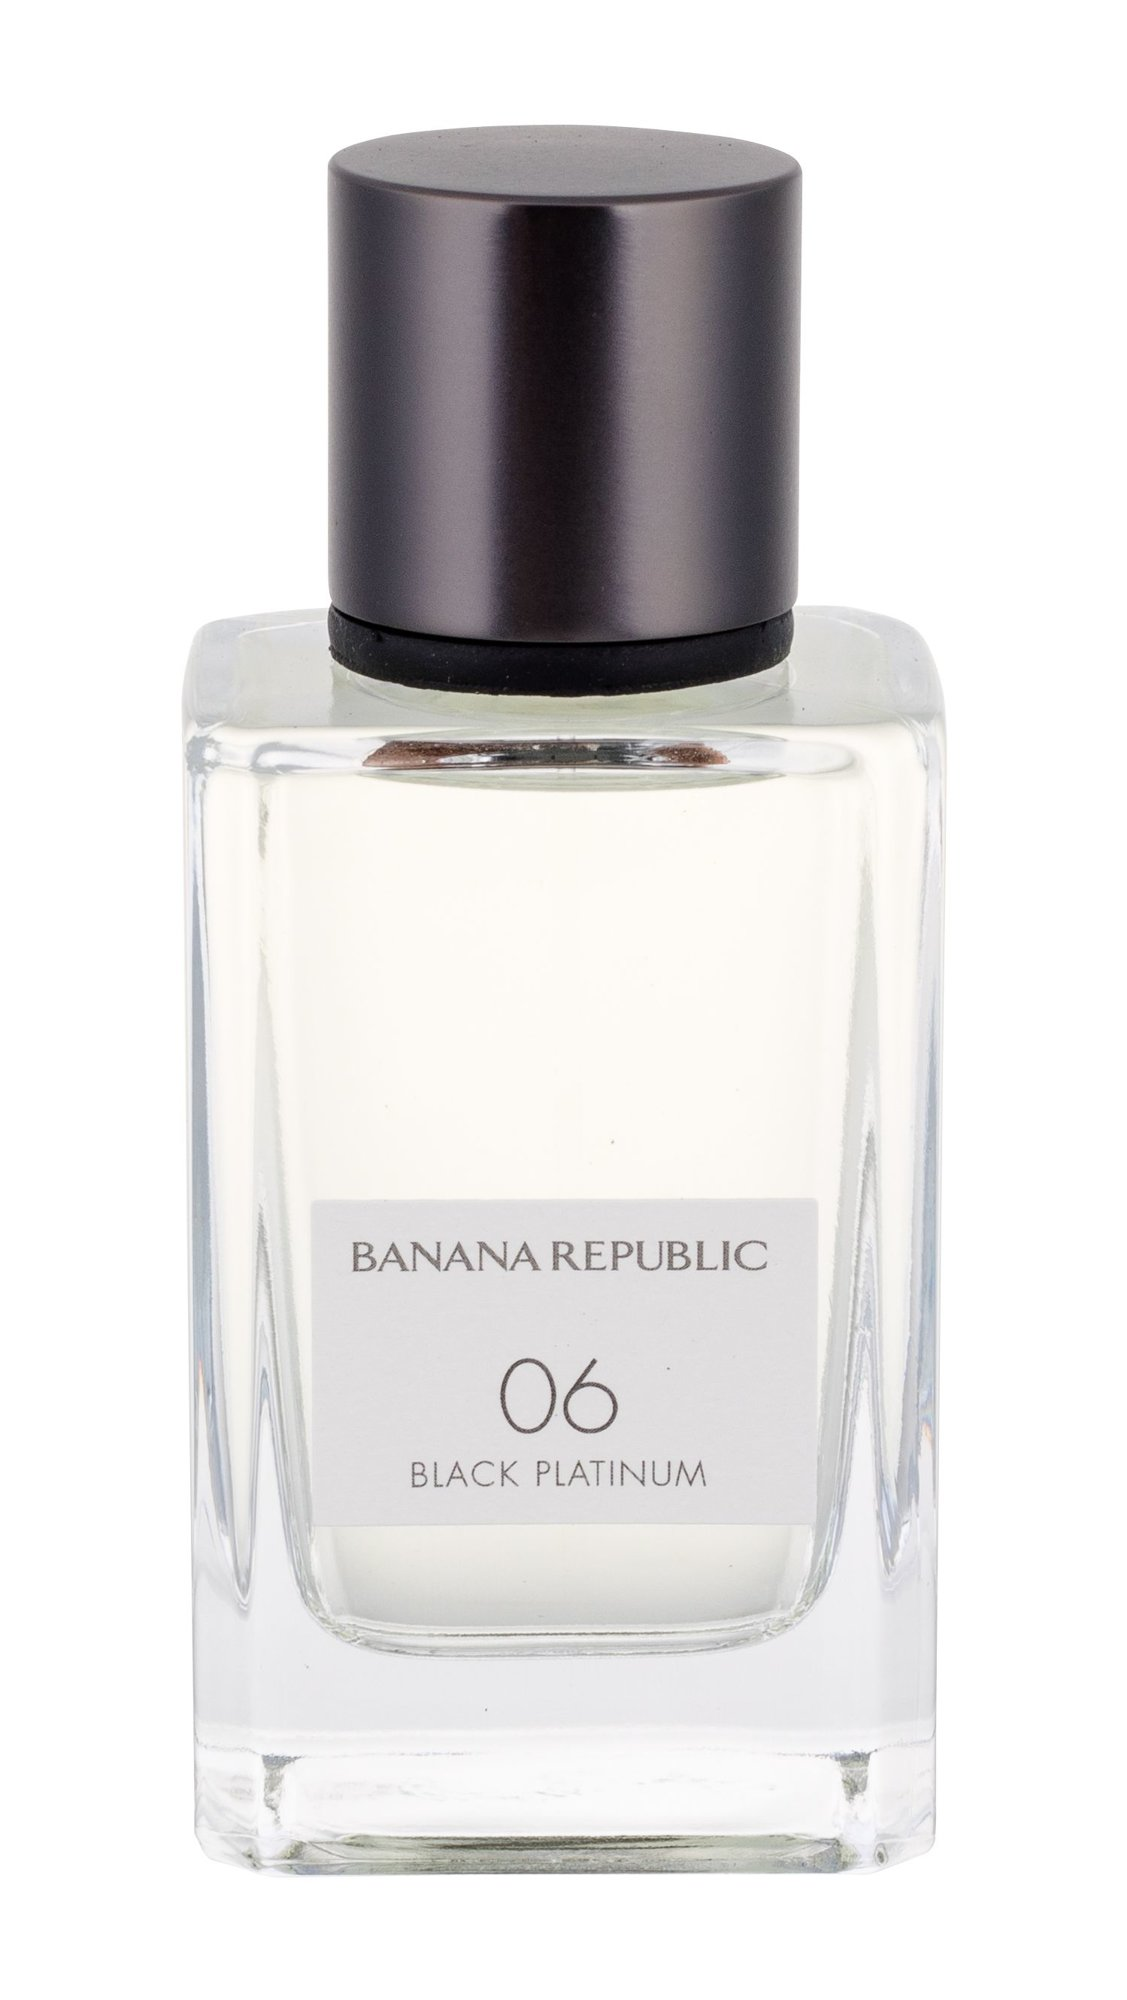 Banana Republic 06 Black Platinum Eau de Parfum 75ml